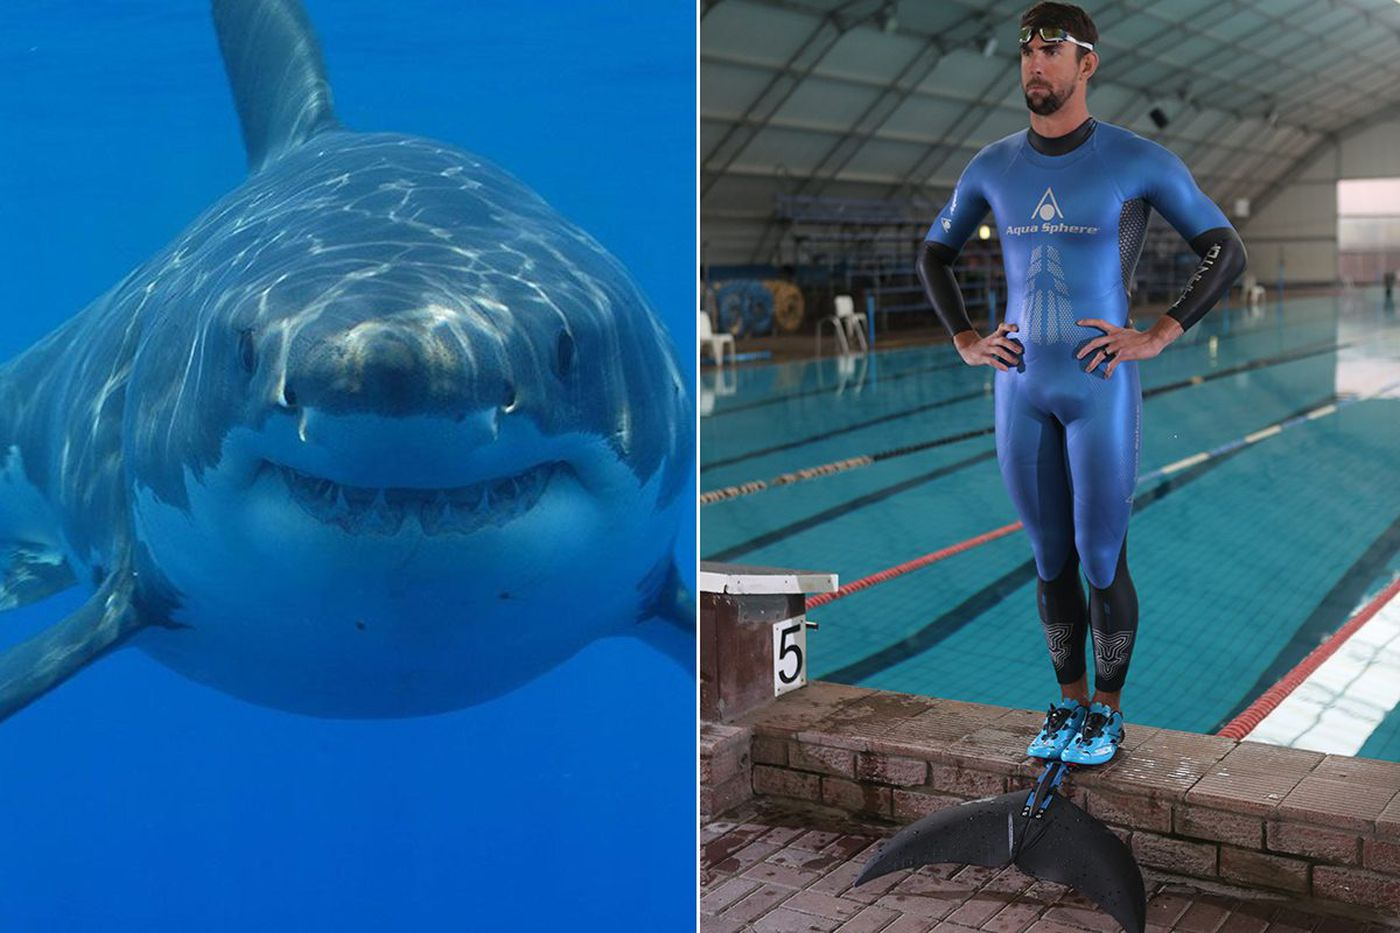 Michael Phelps' race with a great white in Shark Week: Does he stand a chance?